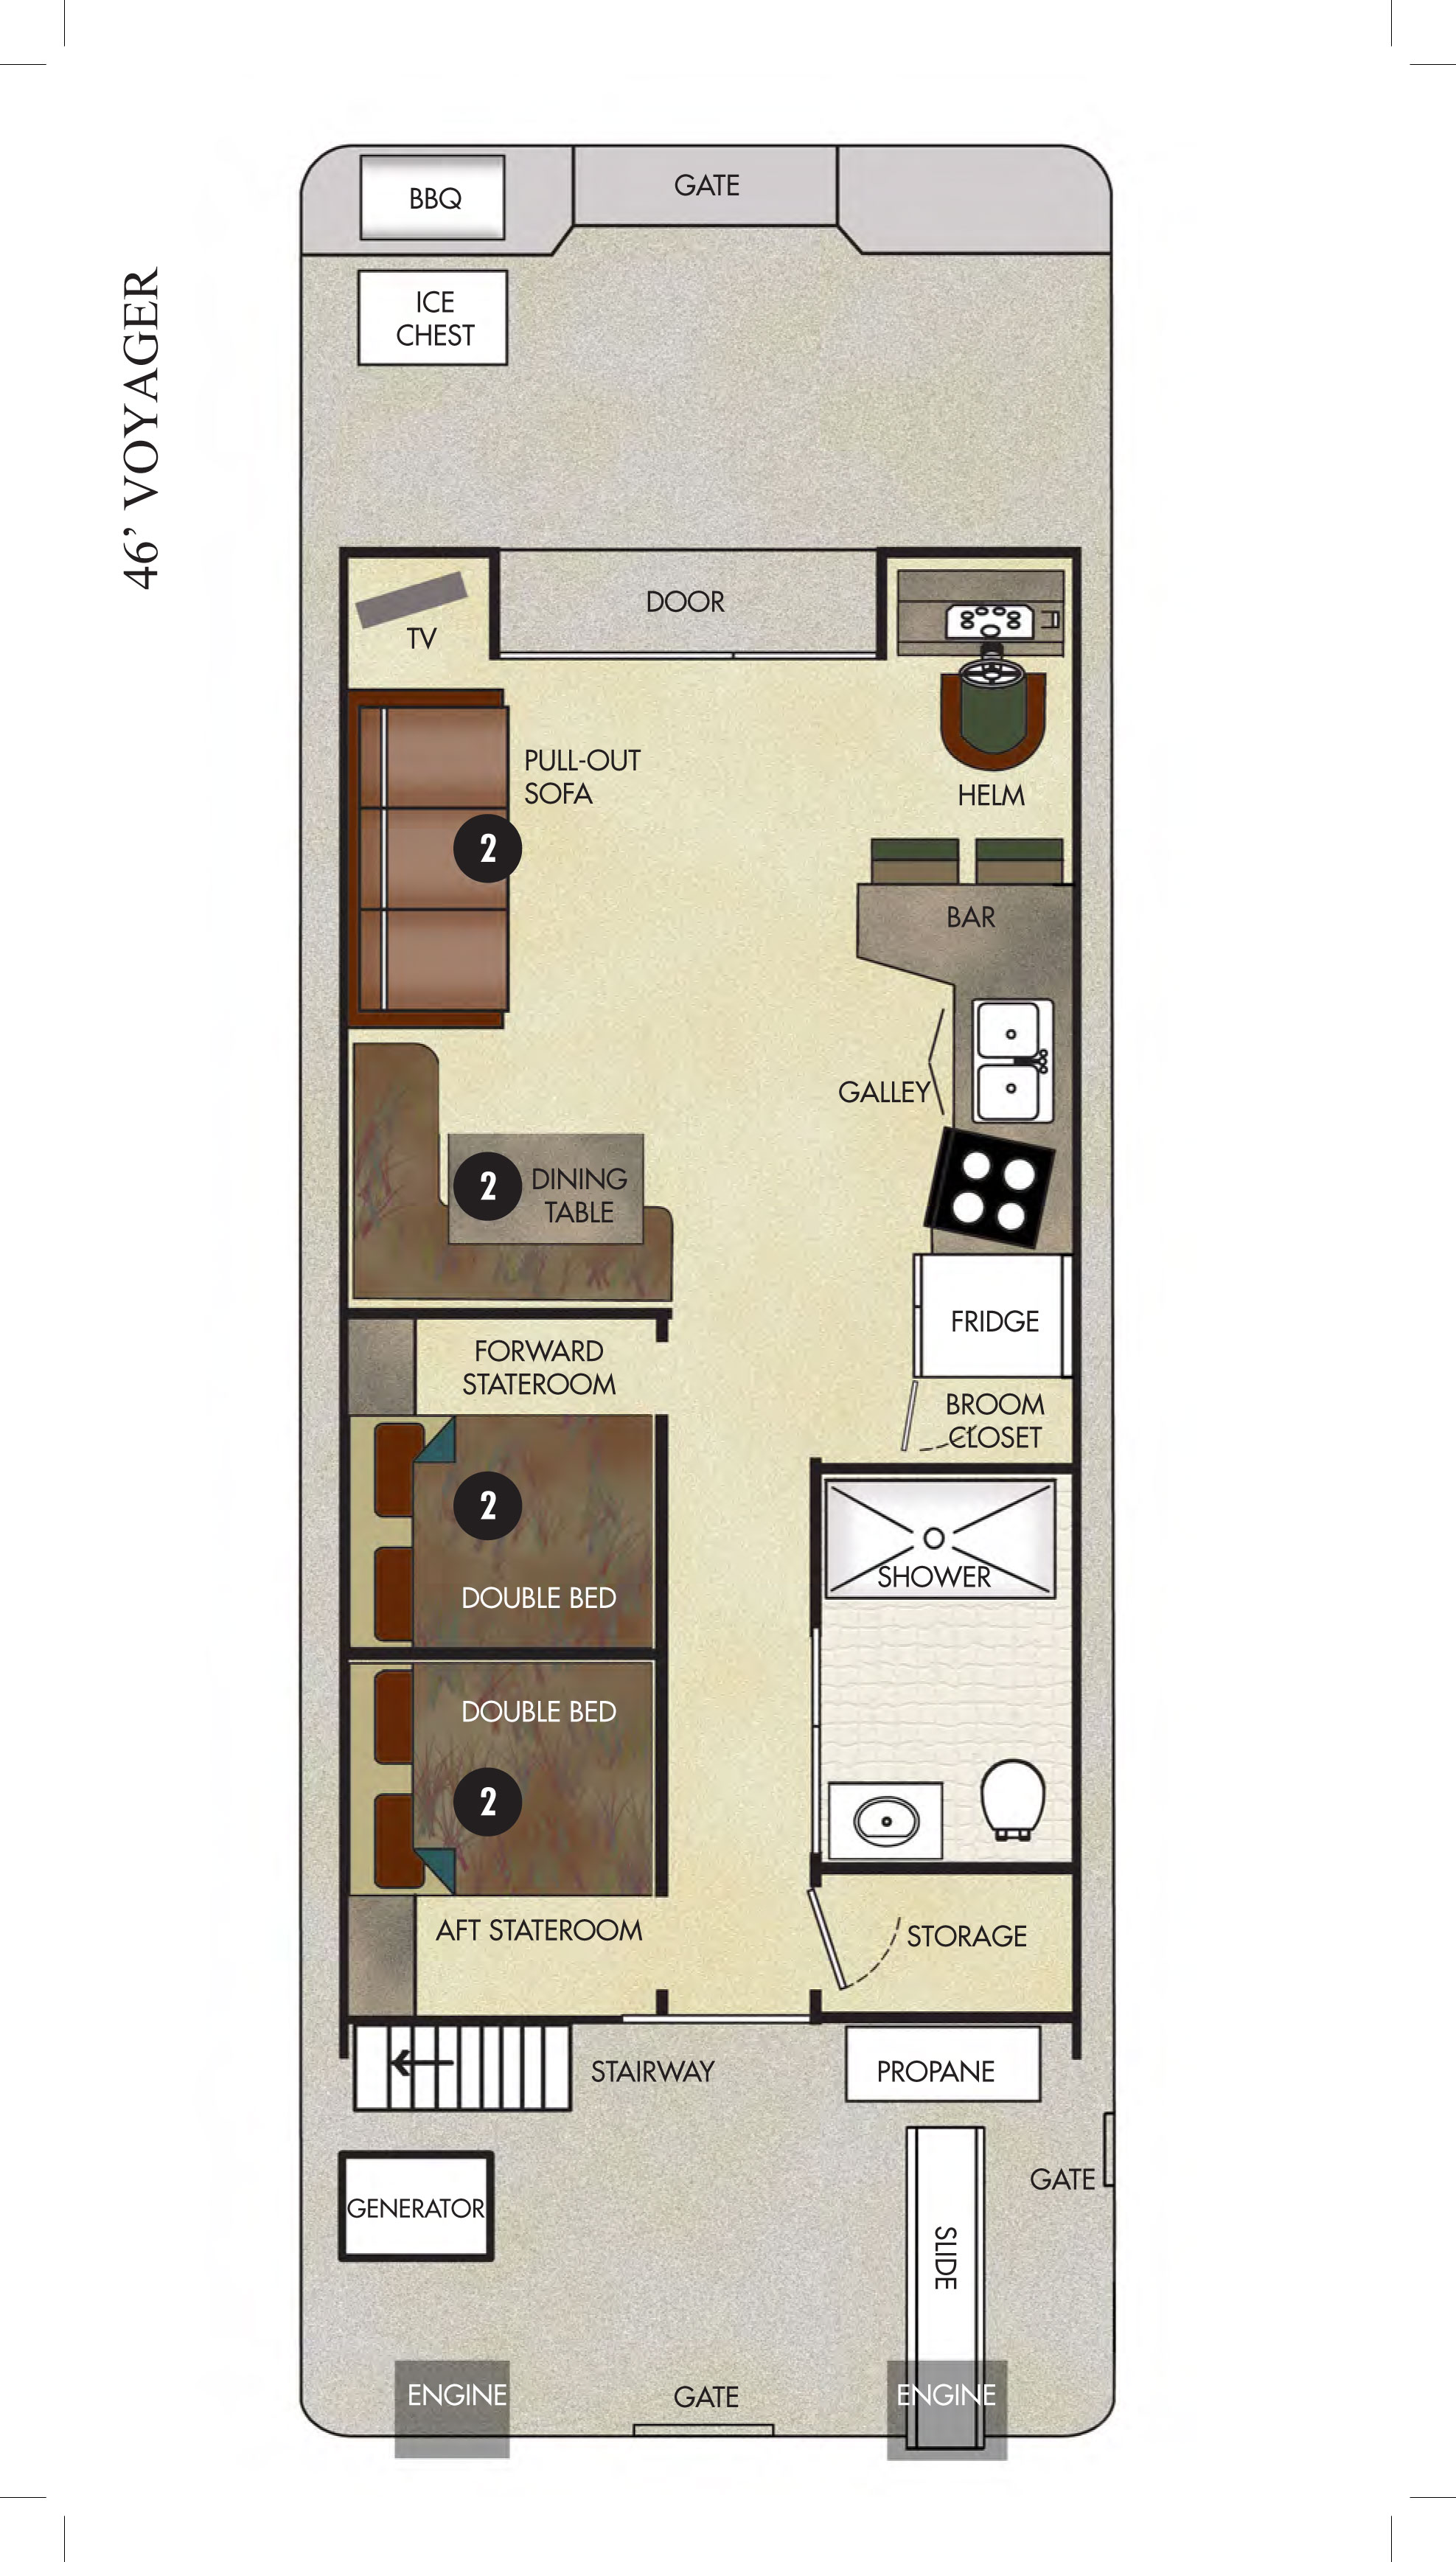 Sample House Floor Plan The Voyager Economy Houseboat Available For Rent At Lake How To Set